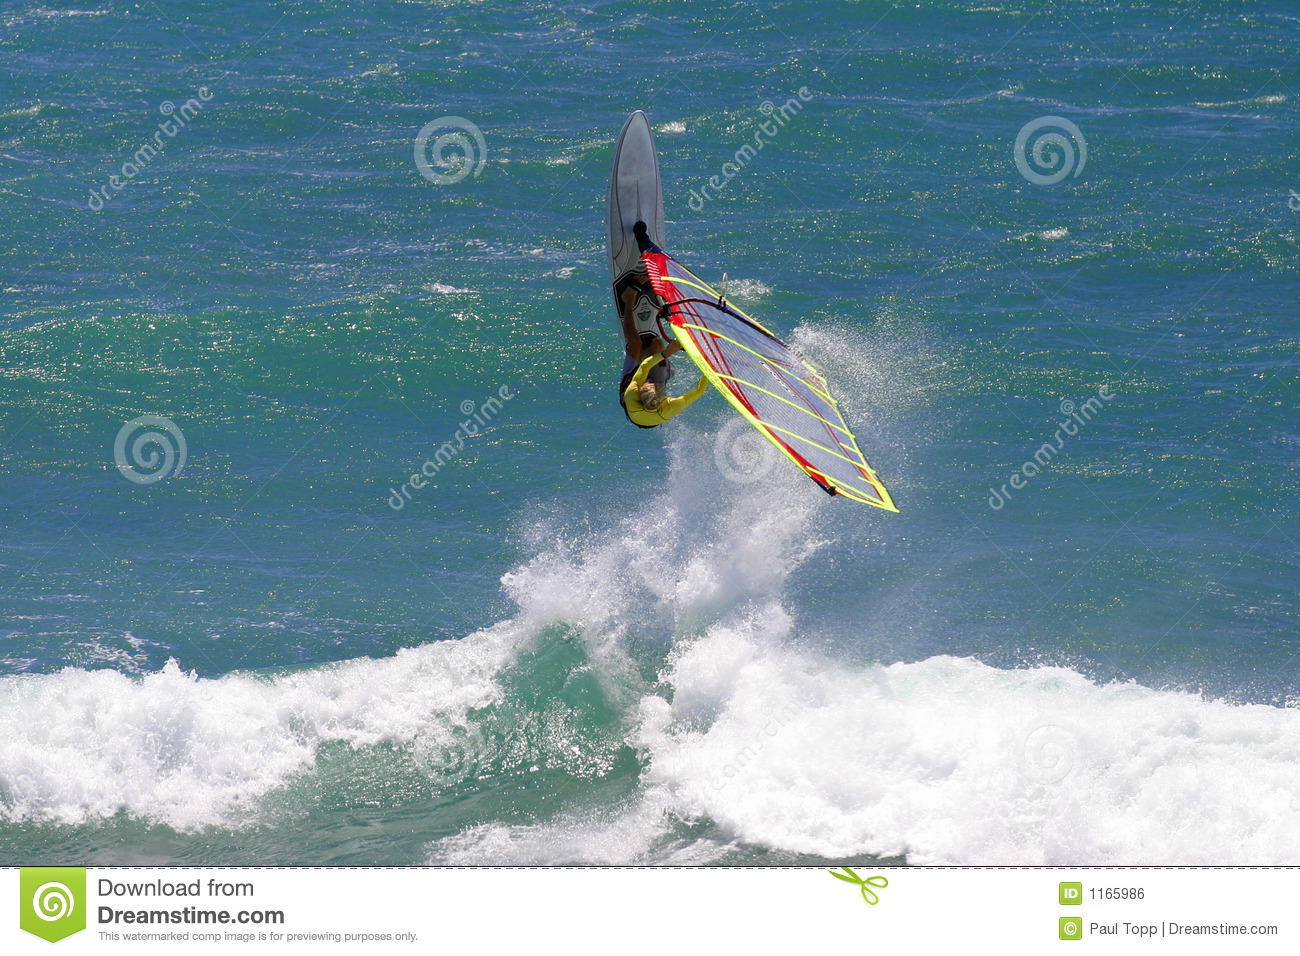 Windsurfing Extreme Action In Hawaii Stock Photo - Image of